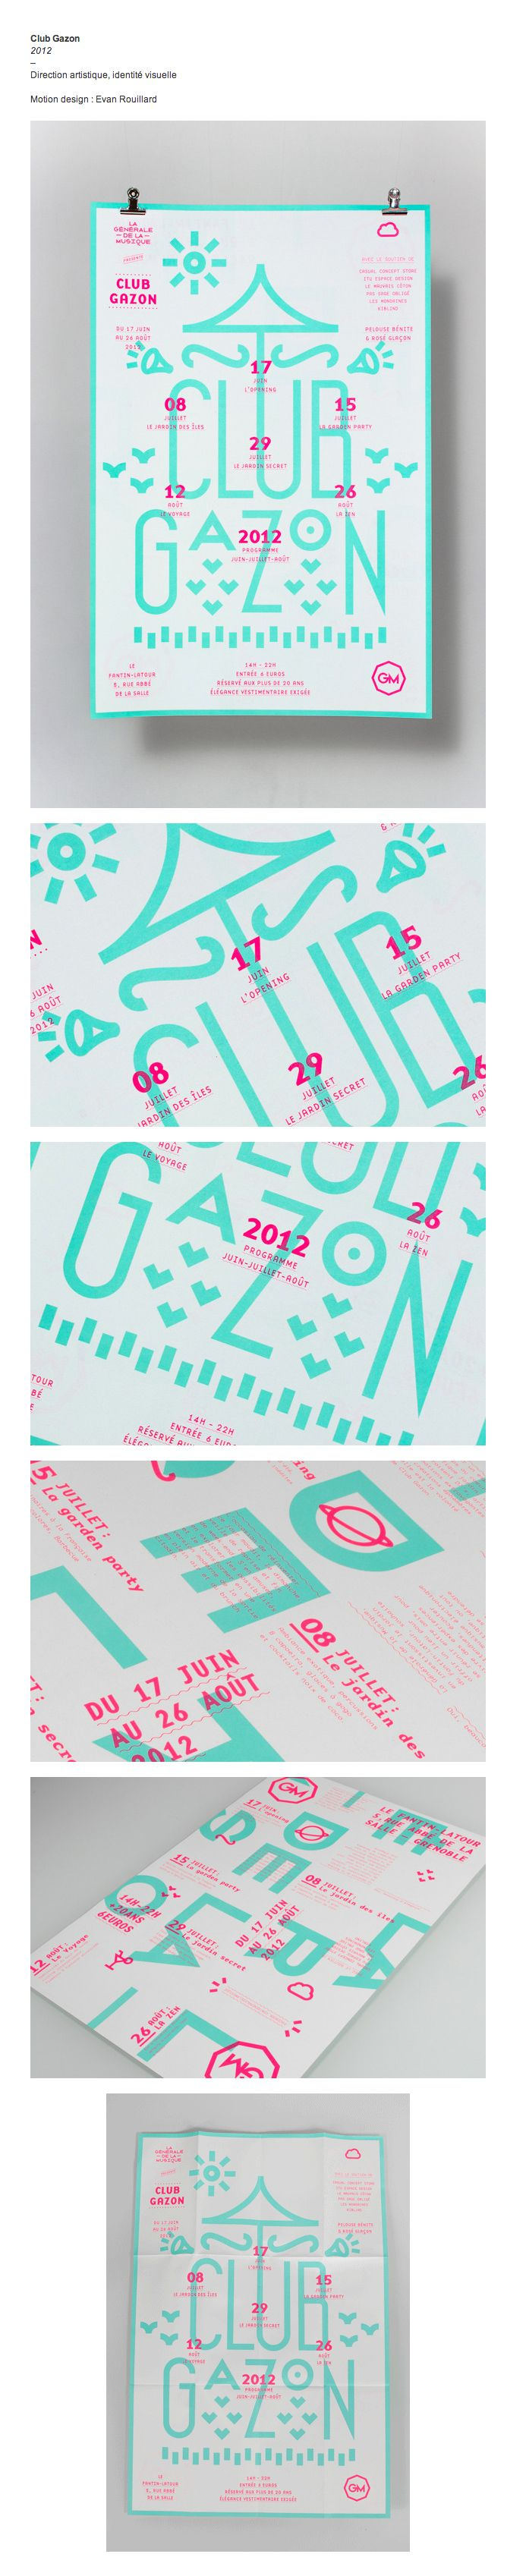 Club Gazon . Poster Design . Graphic Design Inspiration . Geometric Trend